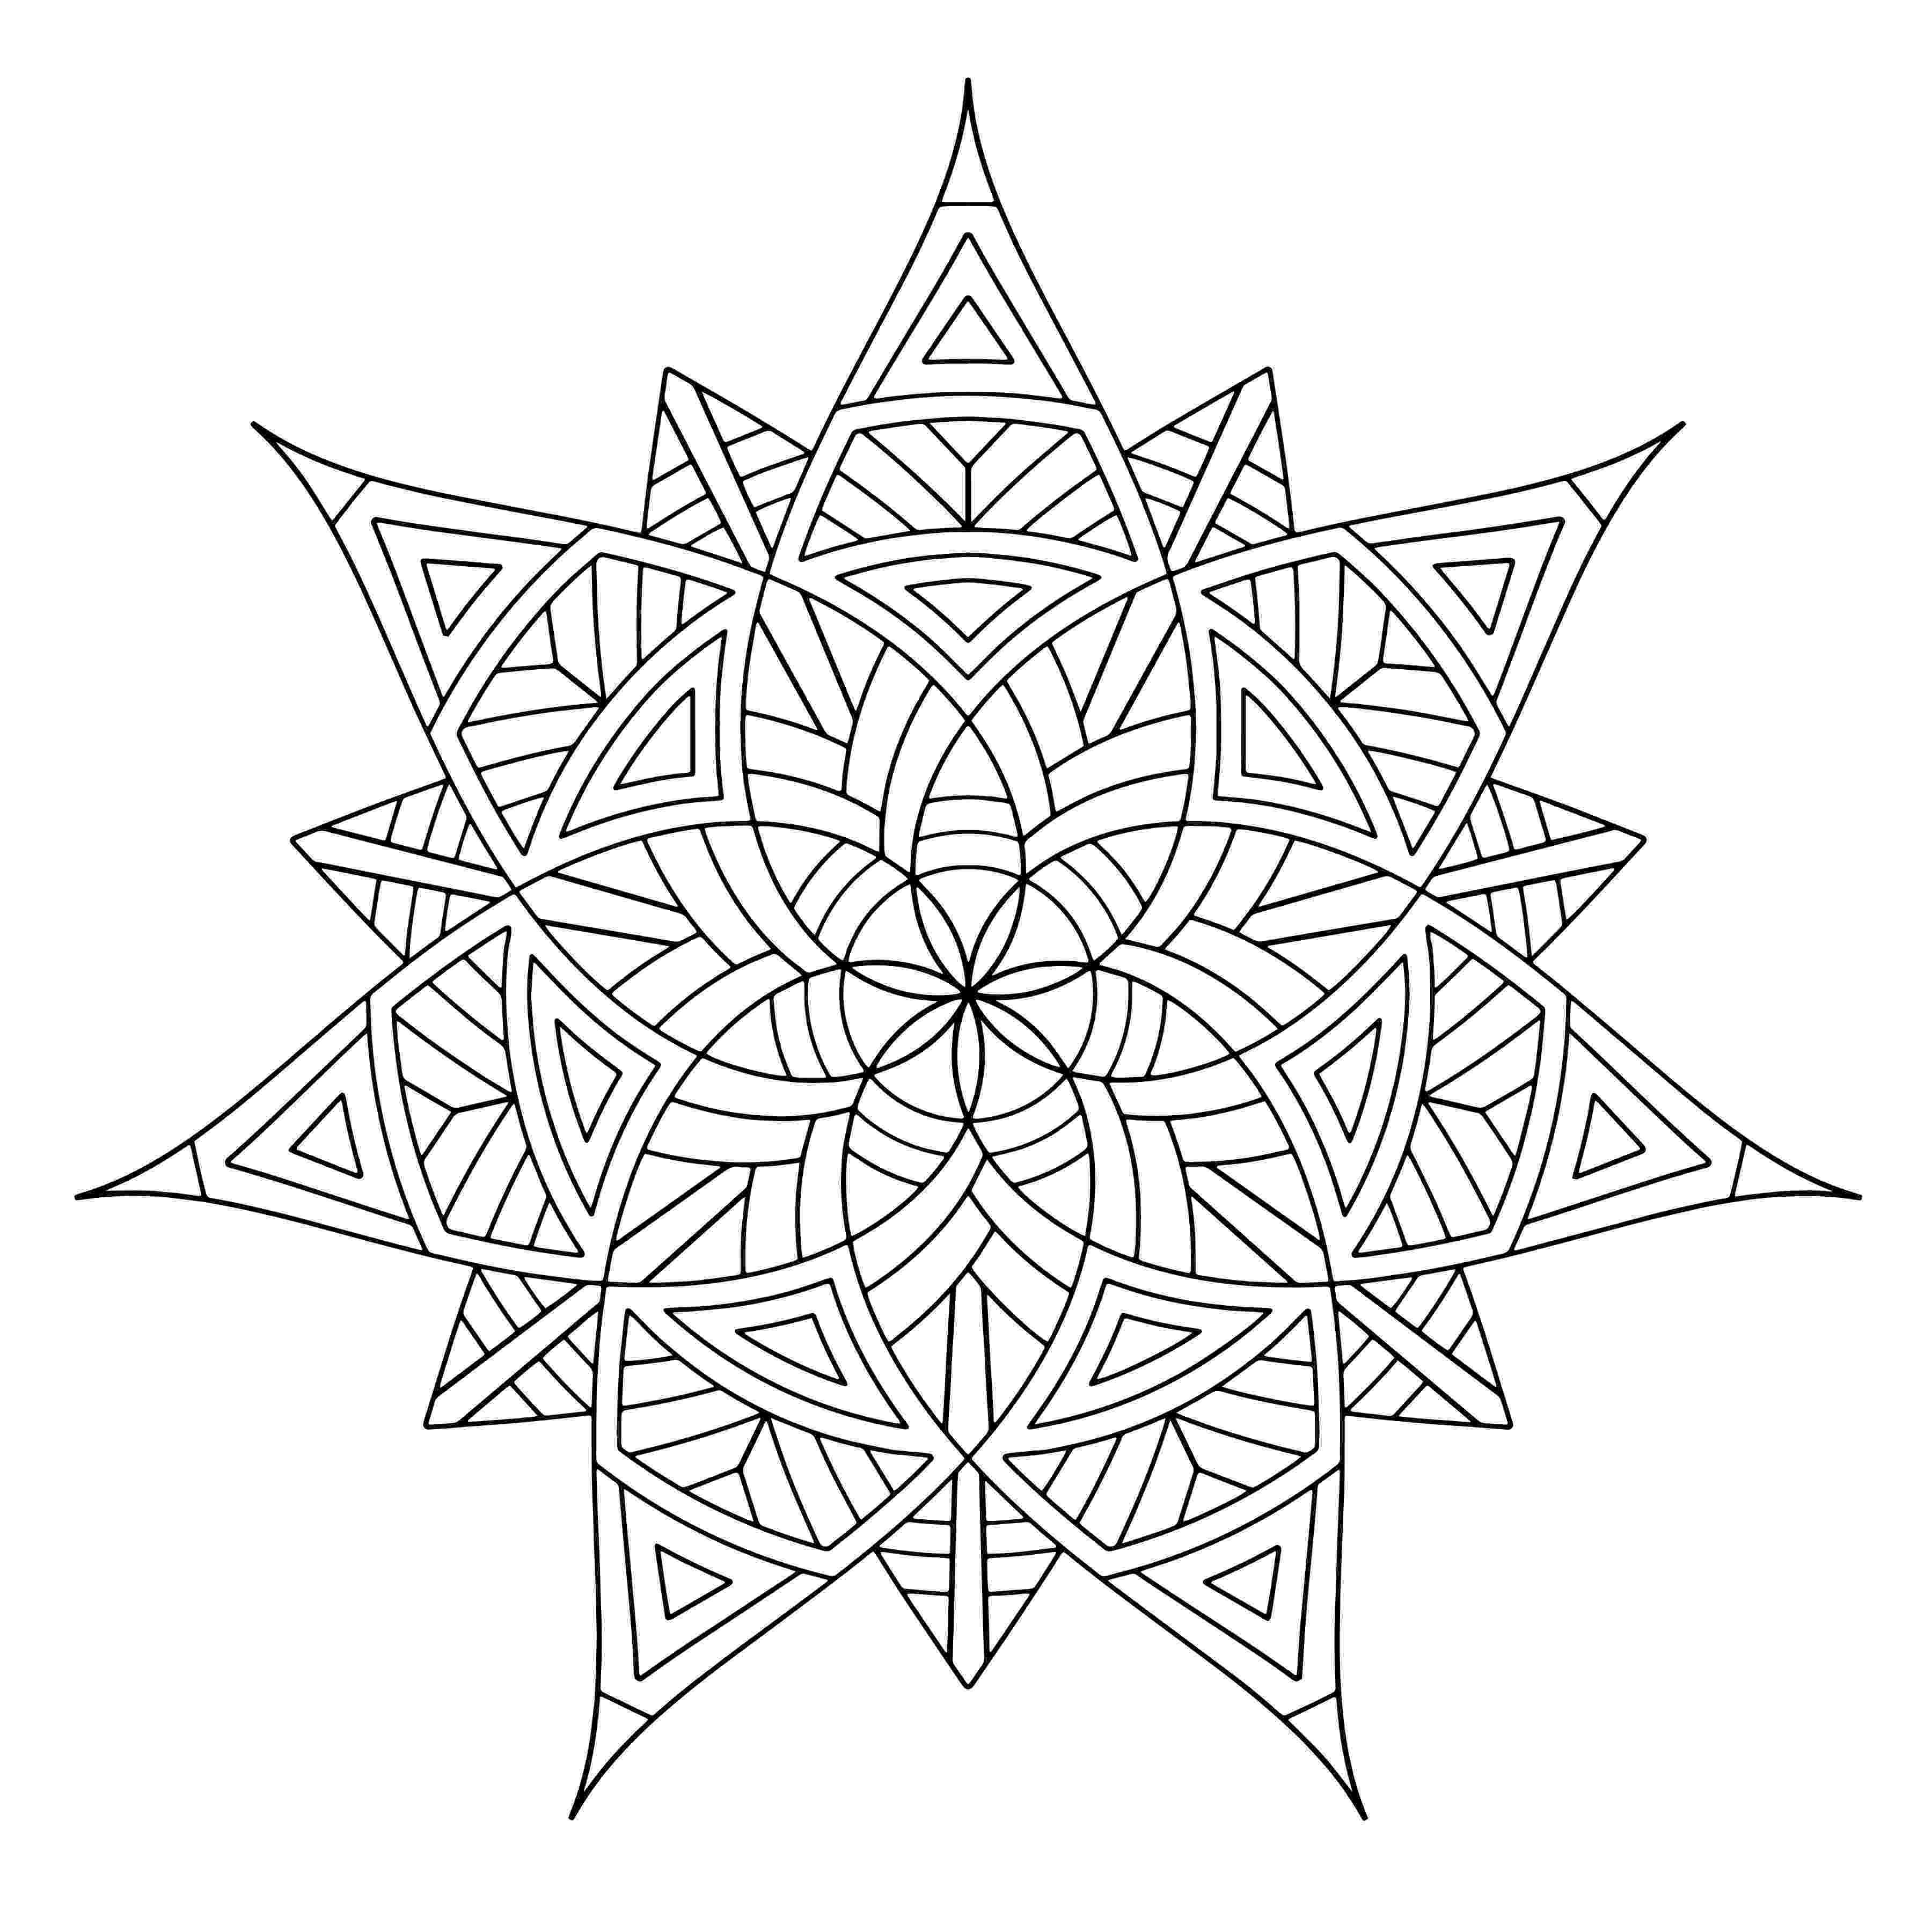 pattern coloring sheets free printable geometric coloring pages for adults pattern sheets coloring 1 1